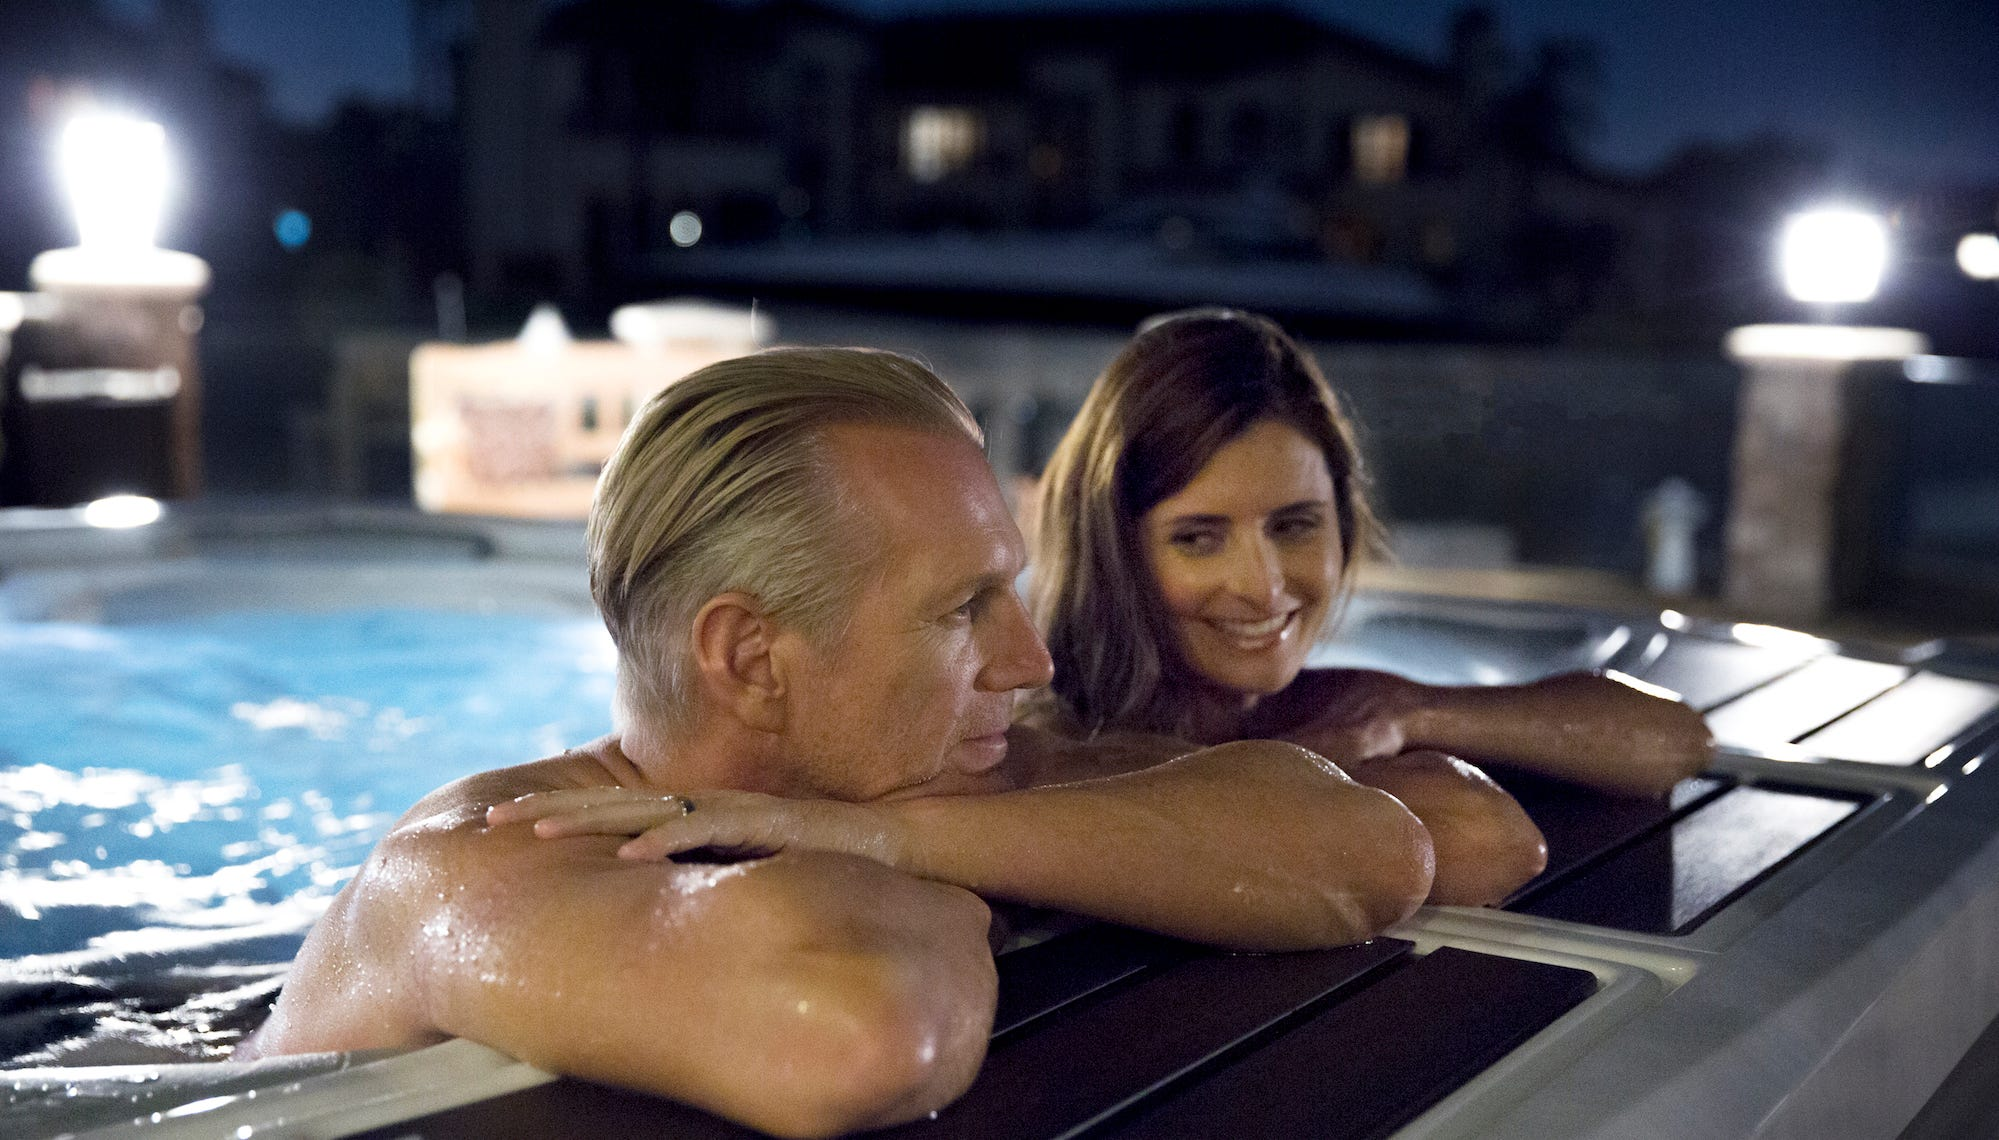 Hot tub, pool or swim spa? Each have their benefits but asking a few simple questions can help figure out which is right for you.